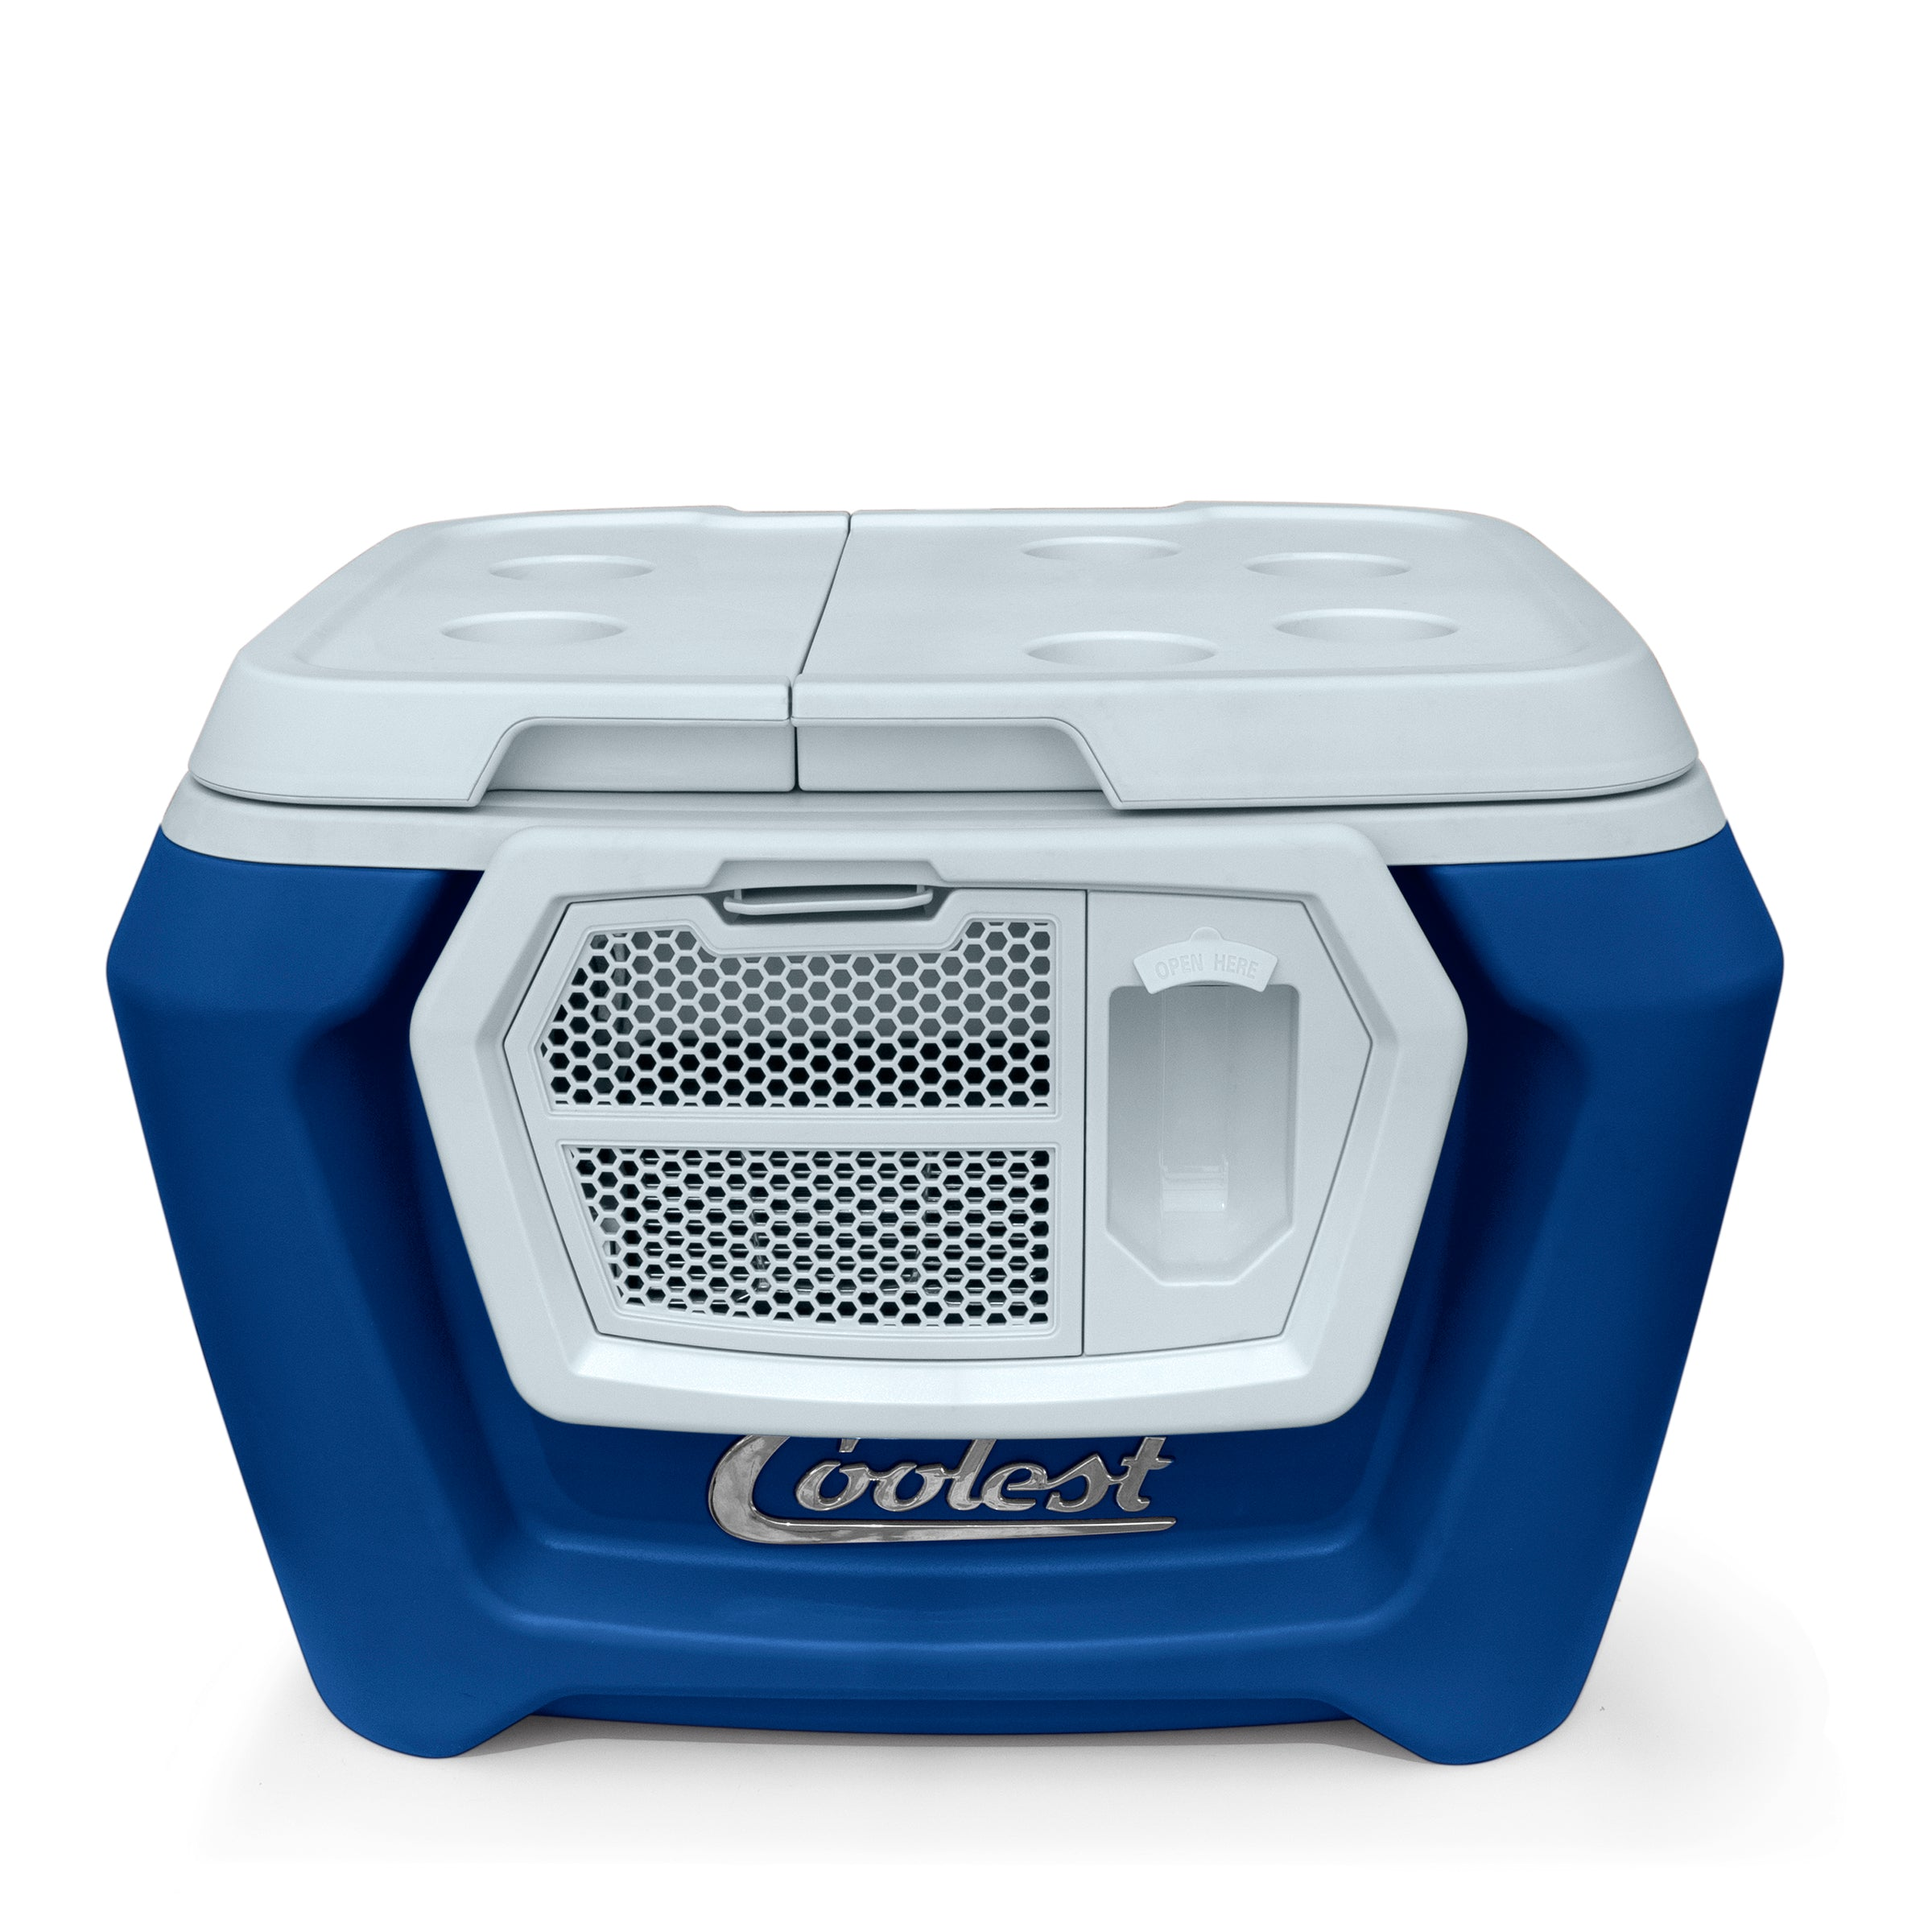 THE COOLEST COOLER - FINALLY, A COOLER THAT'S ACTUALLY COOL